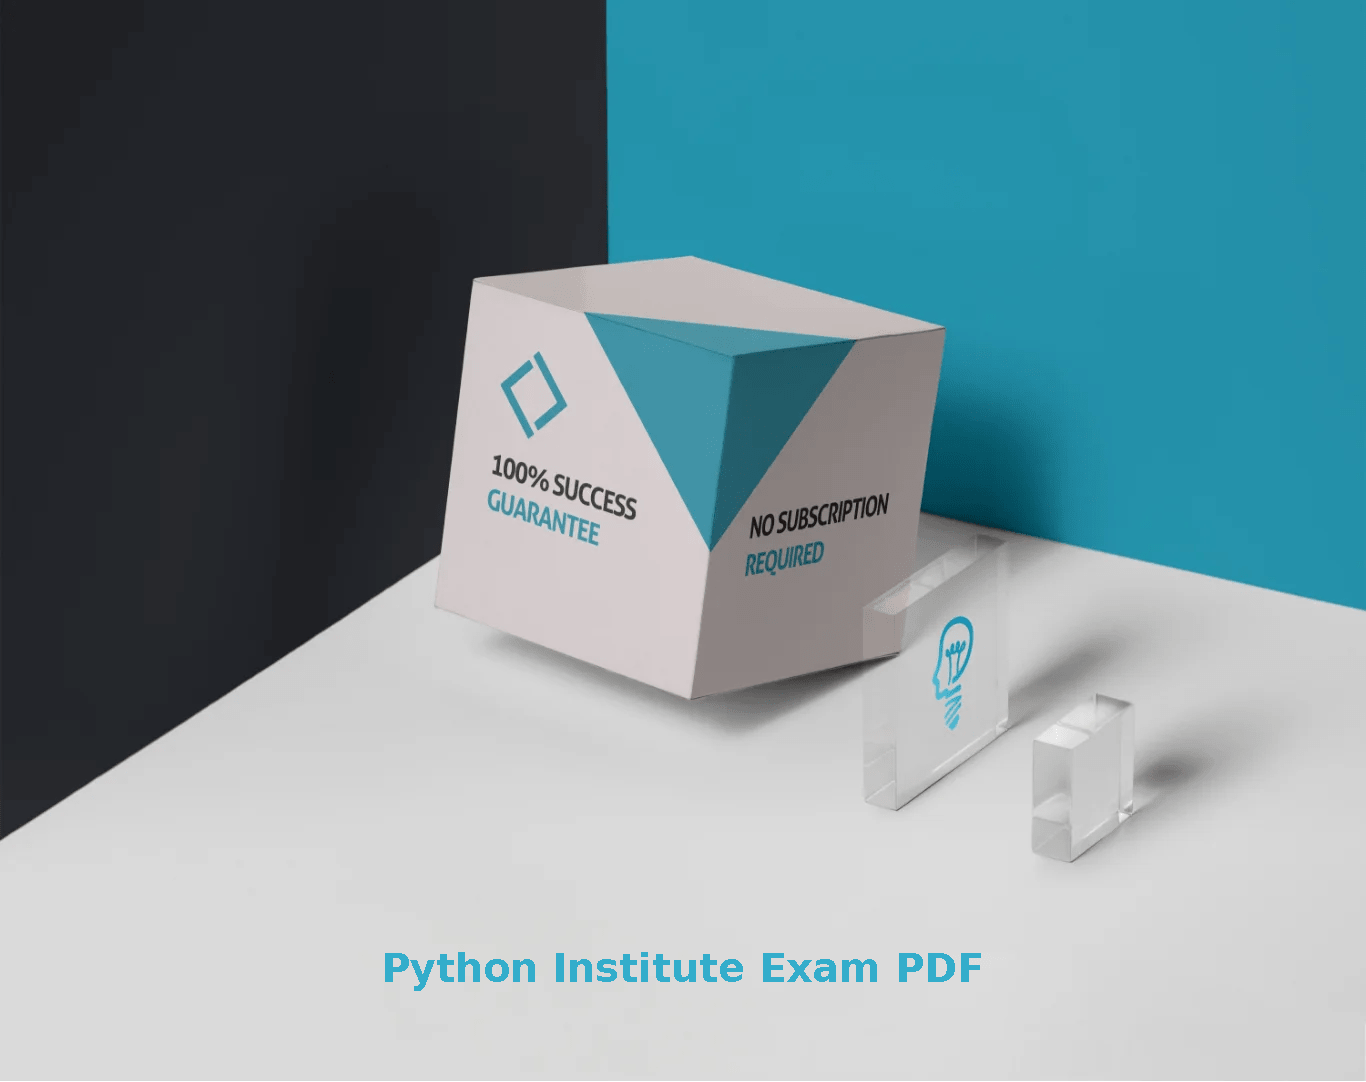 Python Institute Exam PDF